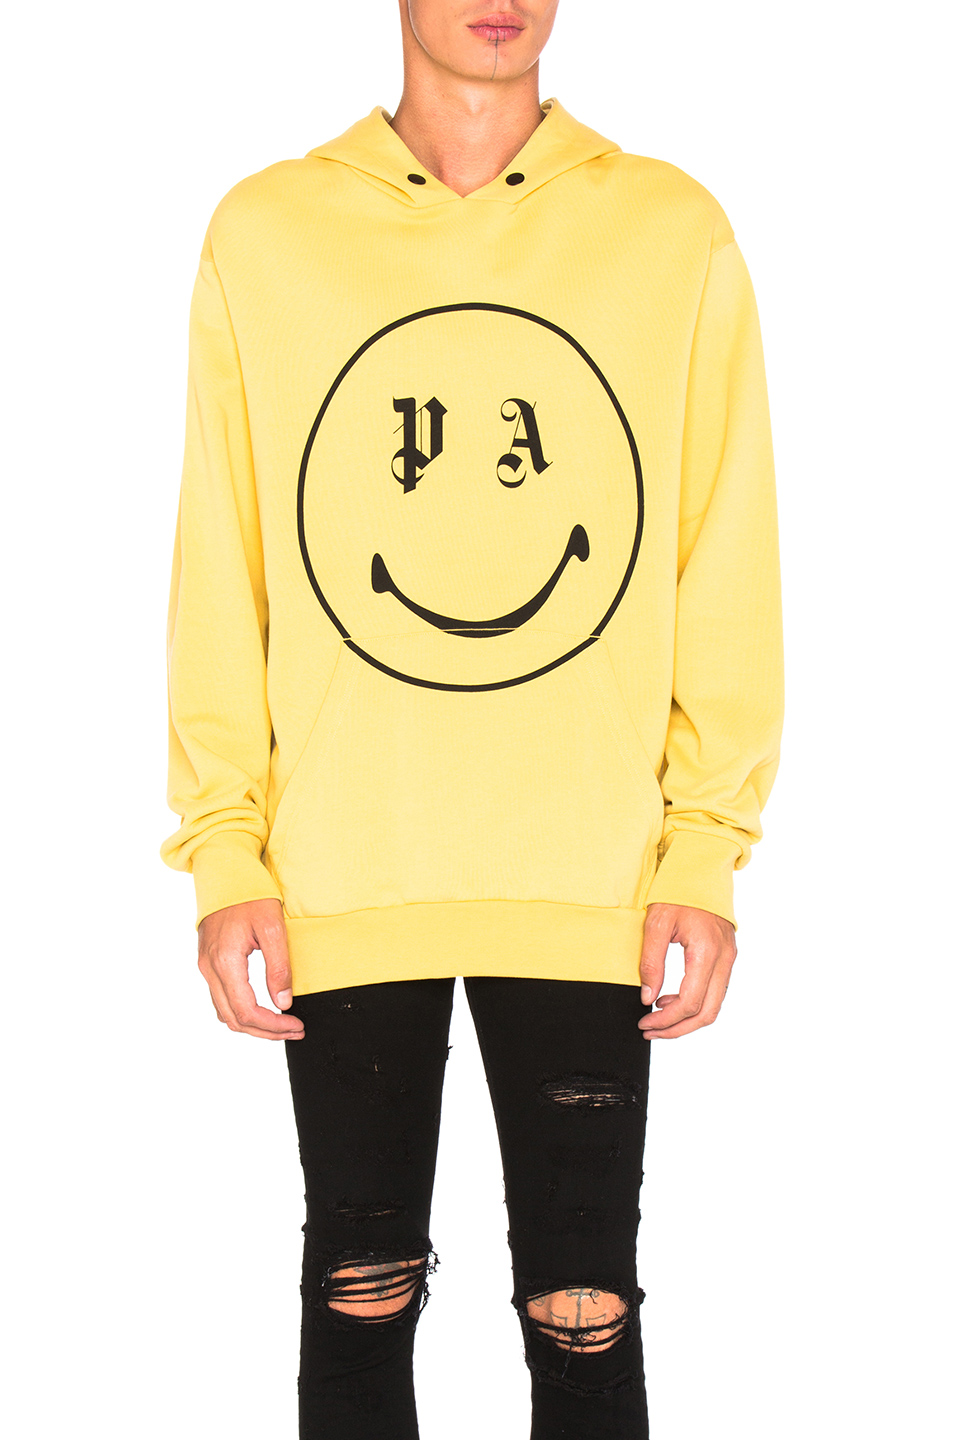 Palm Angels PA Smiling Hoody in Yellow